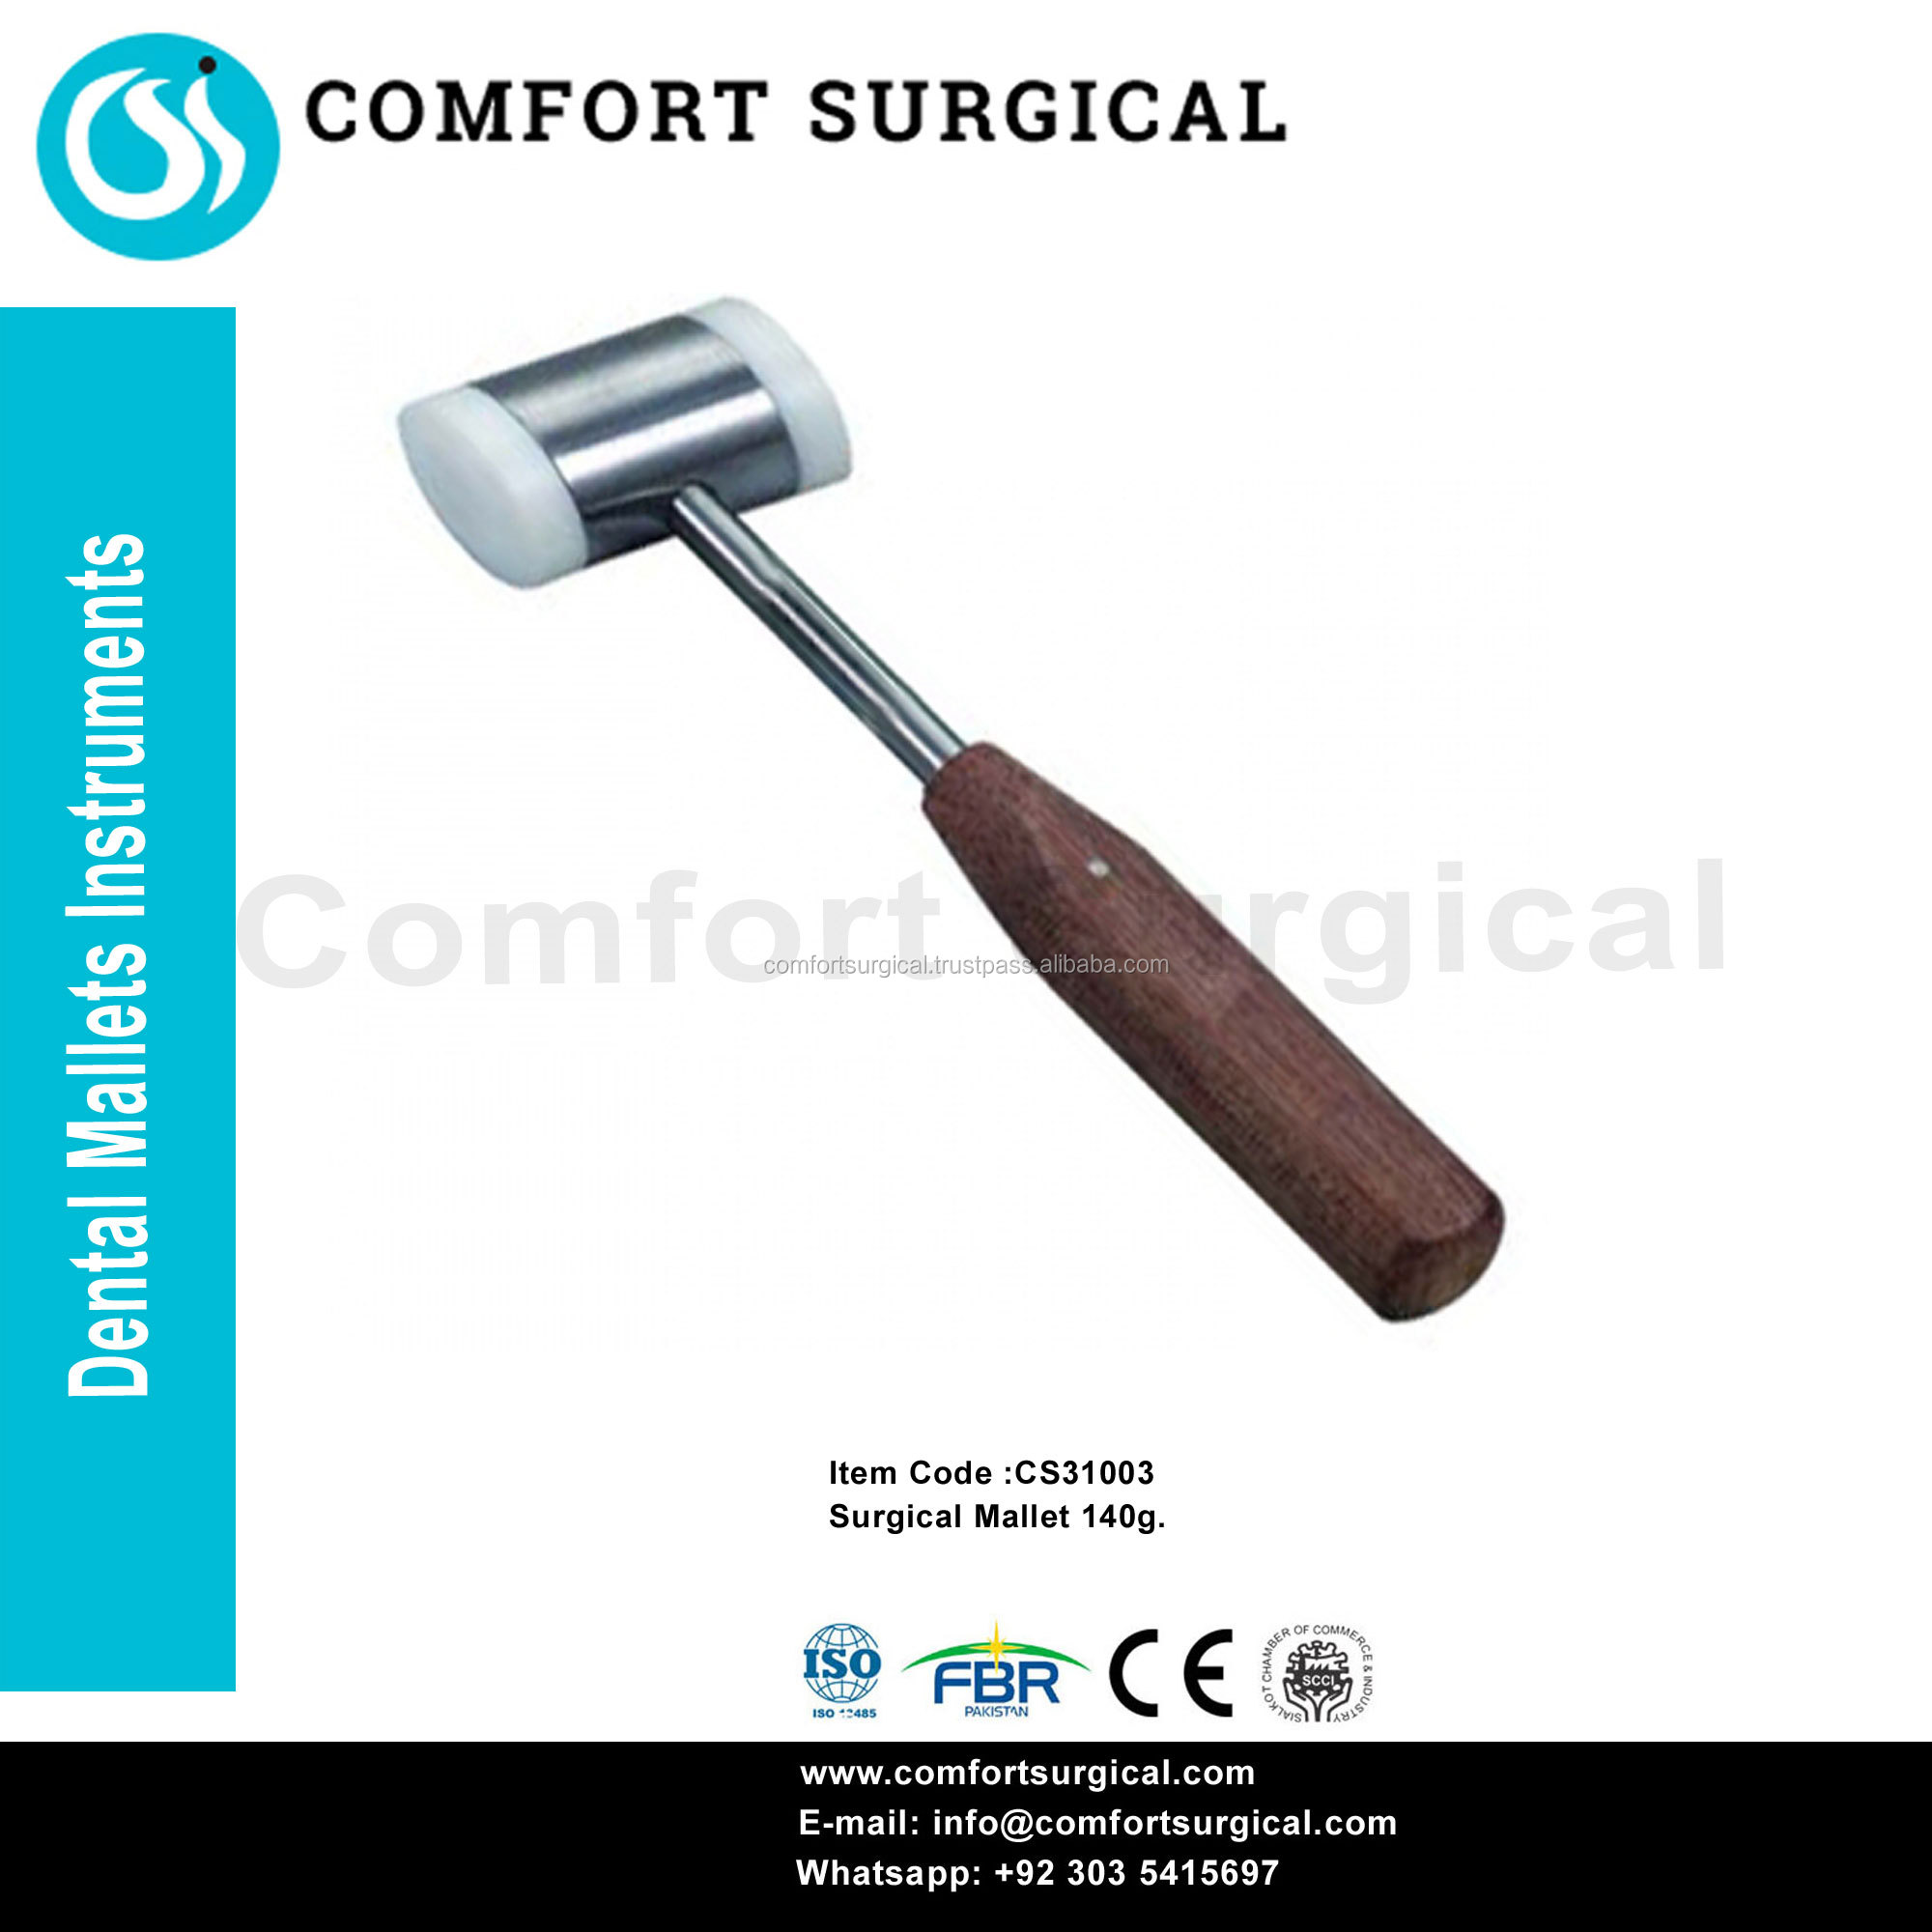 Dental Instruments Surgical Mallet 140g. CE ISO 13485 Approved